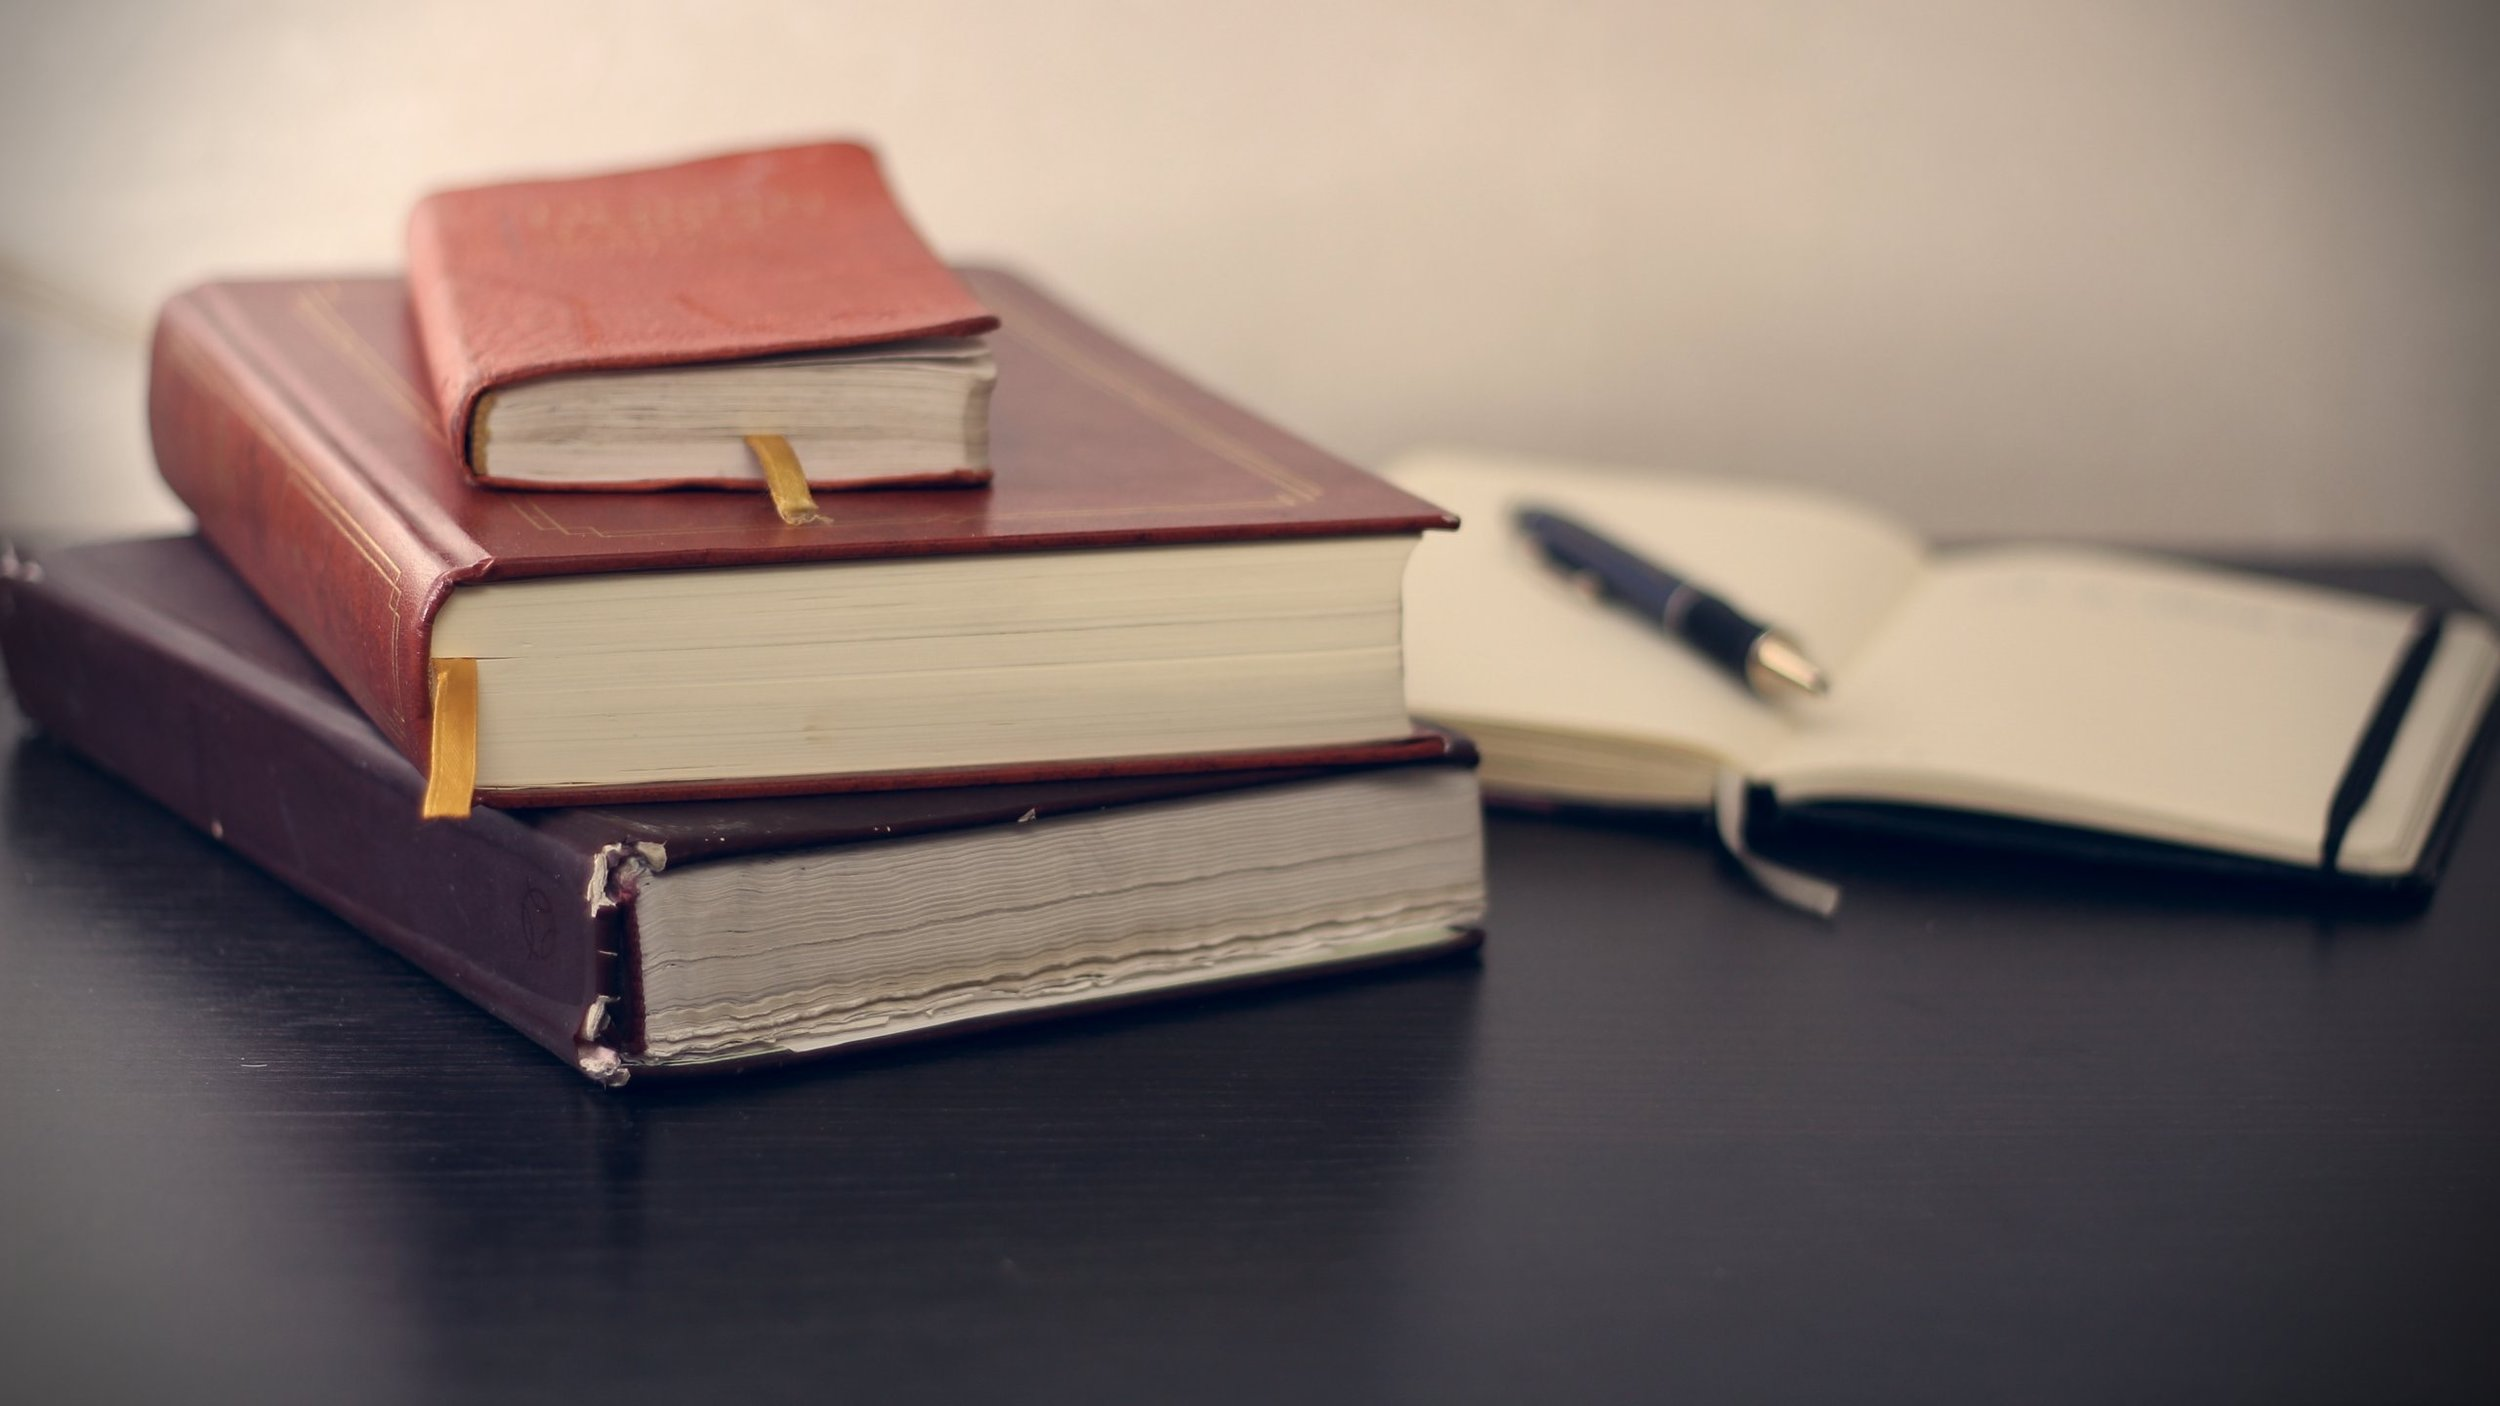 writing, editing, reference books, production process